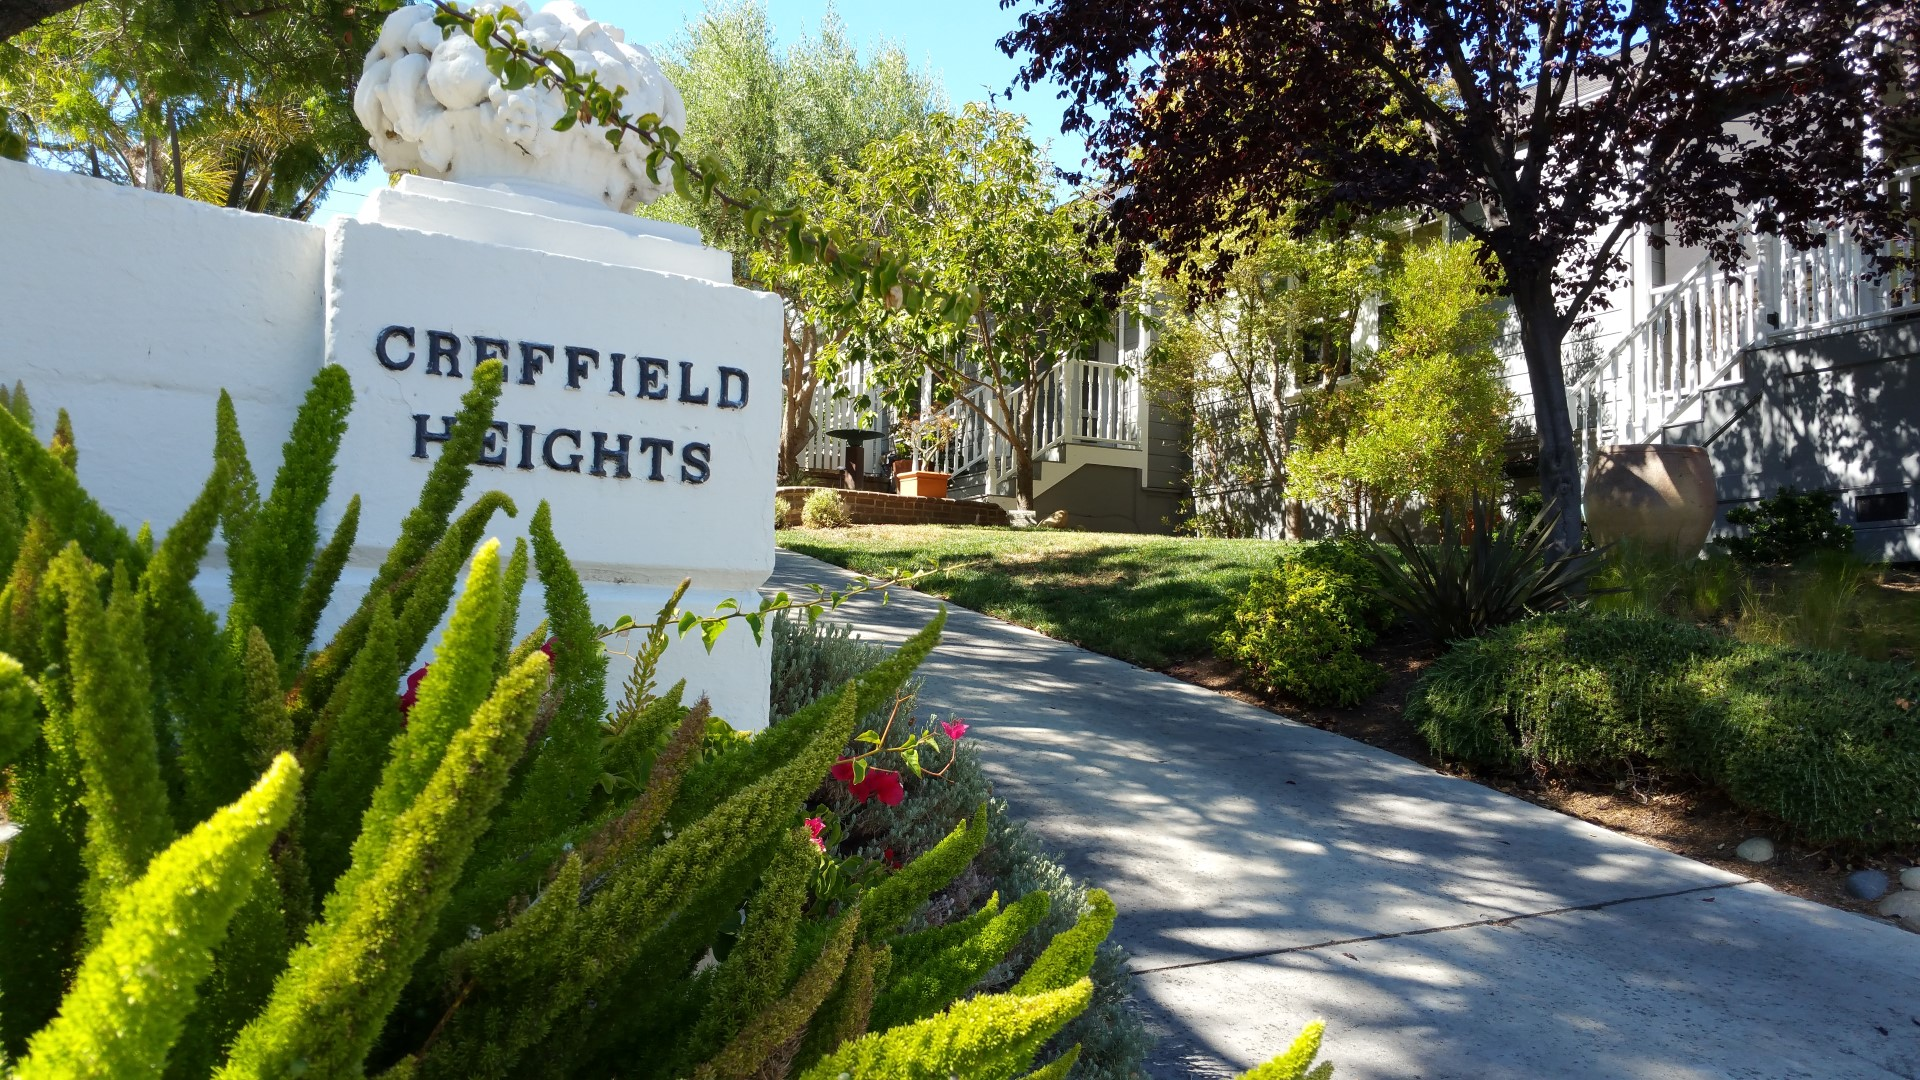 2 Creffield Heights1 - Creffield Heights and San Benito Avenue area